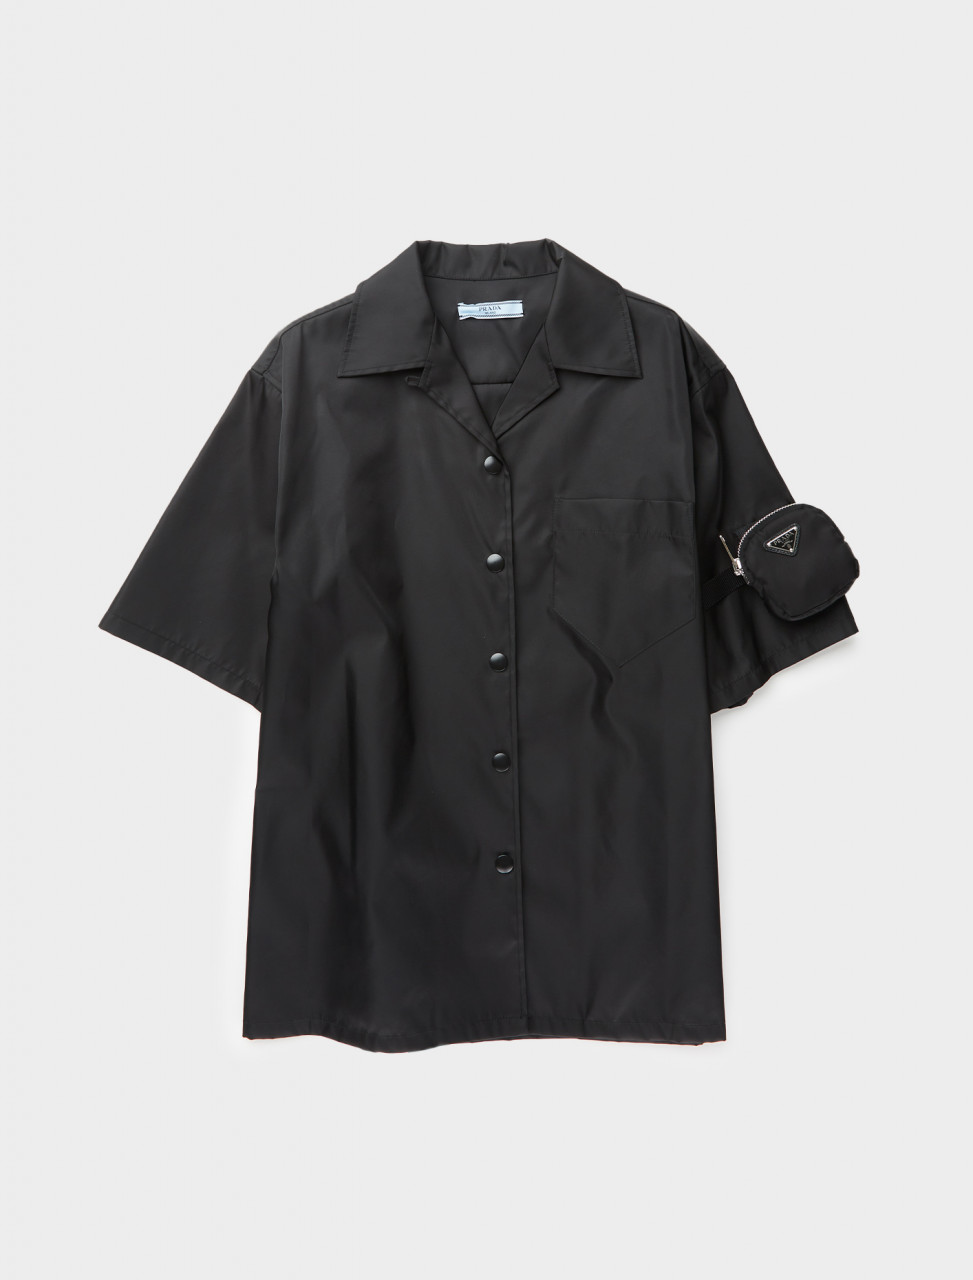 242-240683-1WQ8-F0002-S-201 PRADA RE-NYLON SHORT SLEEVE SHIRT WITH POUCH